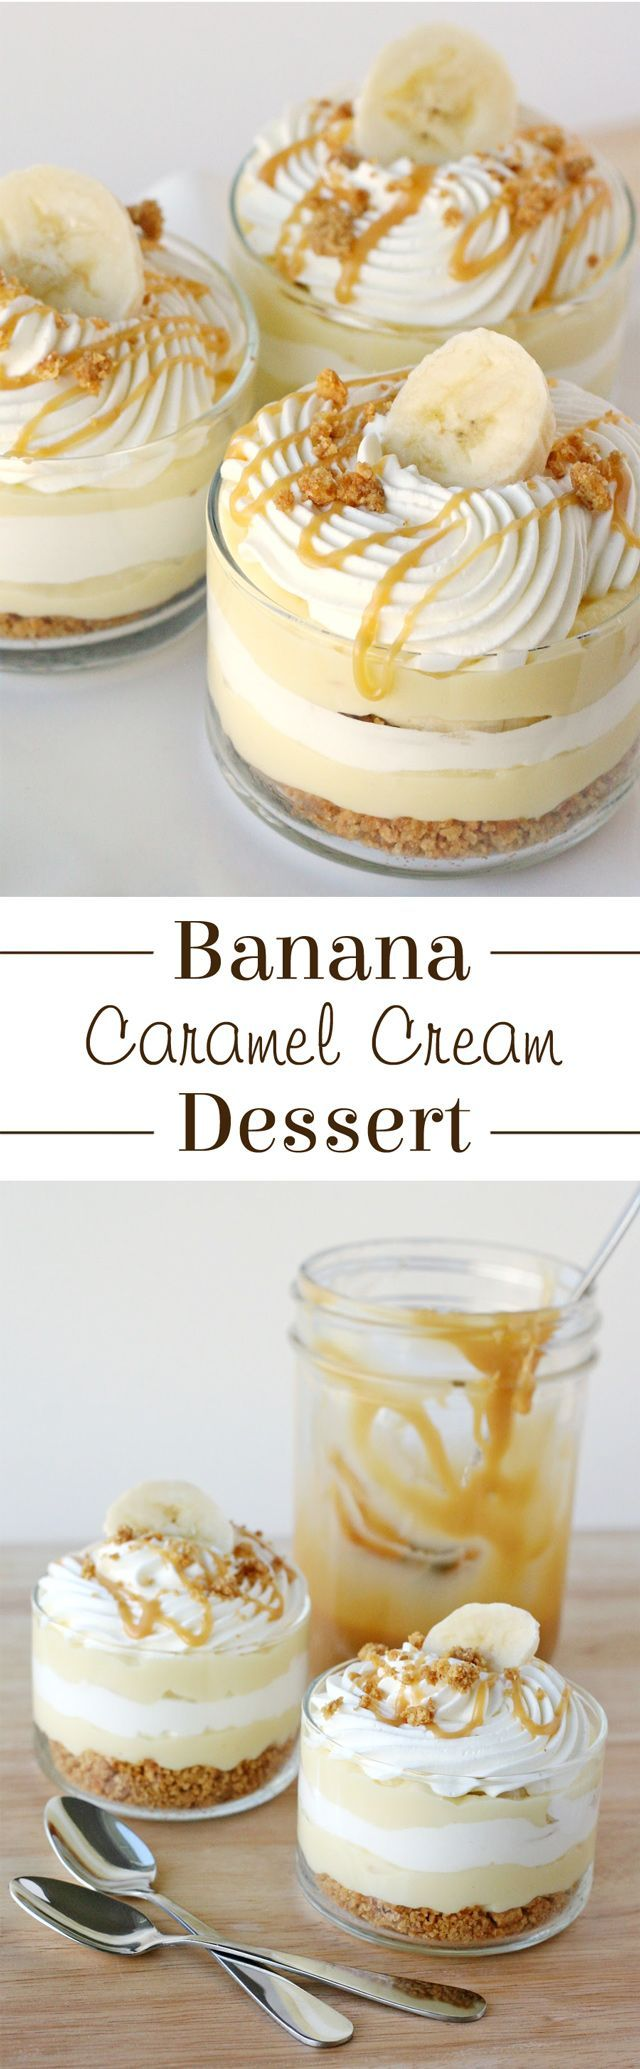 This Banana Caramel Cream Dessert is simply one of the most delicious desserts ever! Filling with a Marie Callender's Pie would make this dessert a breeze!